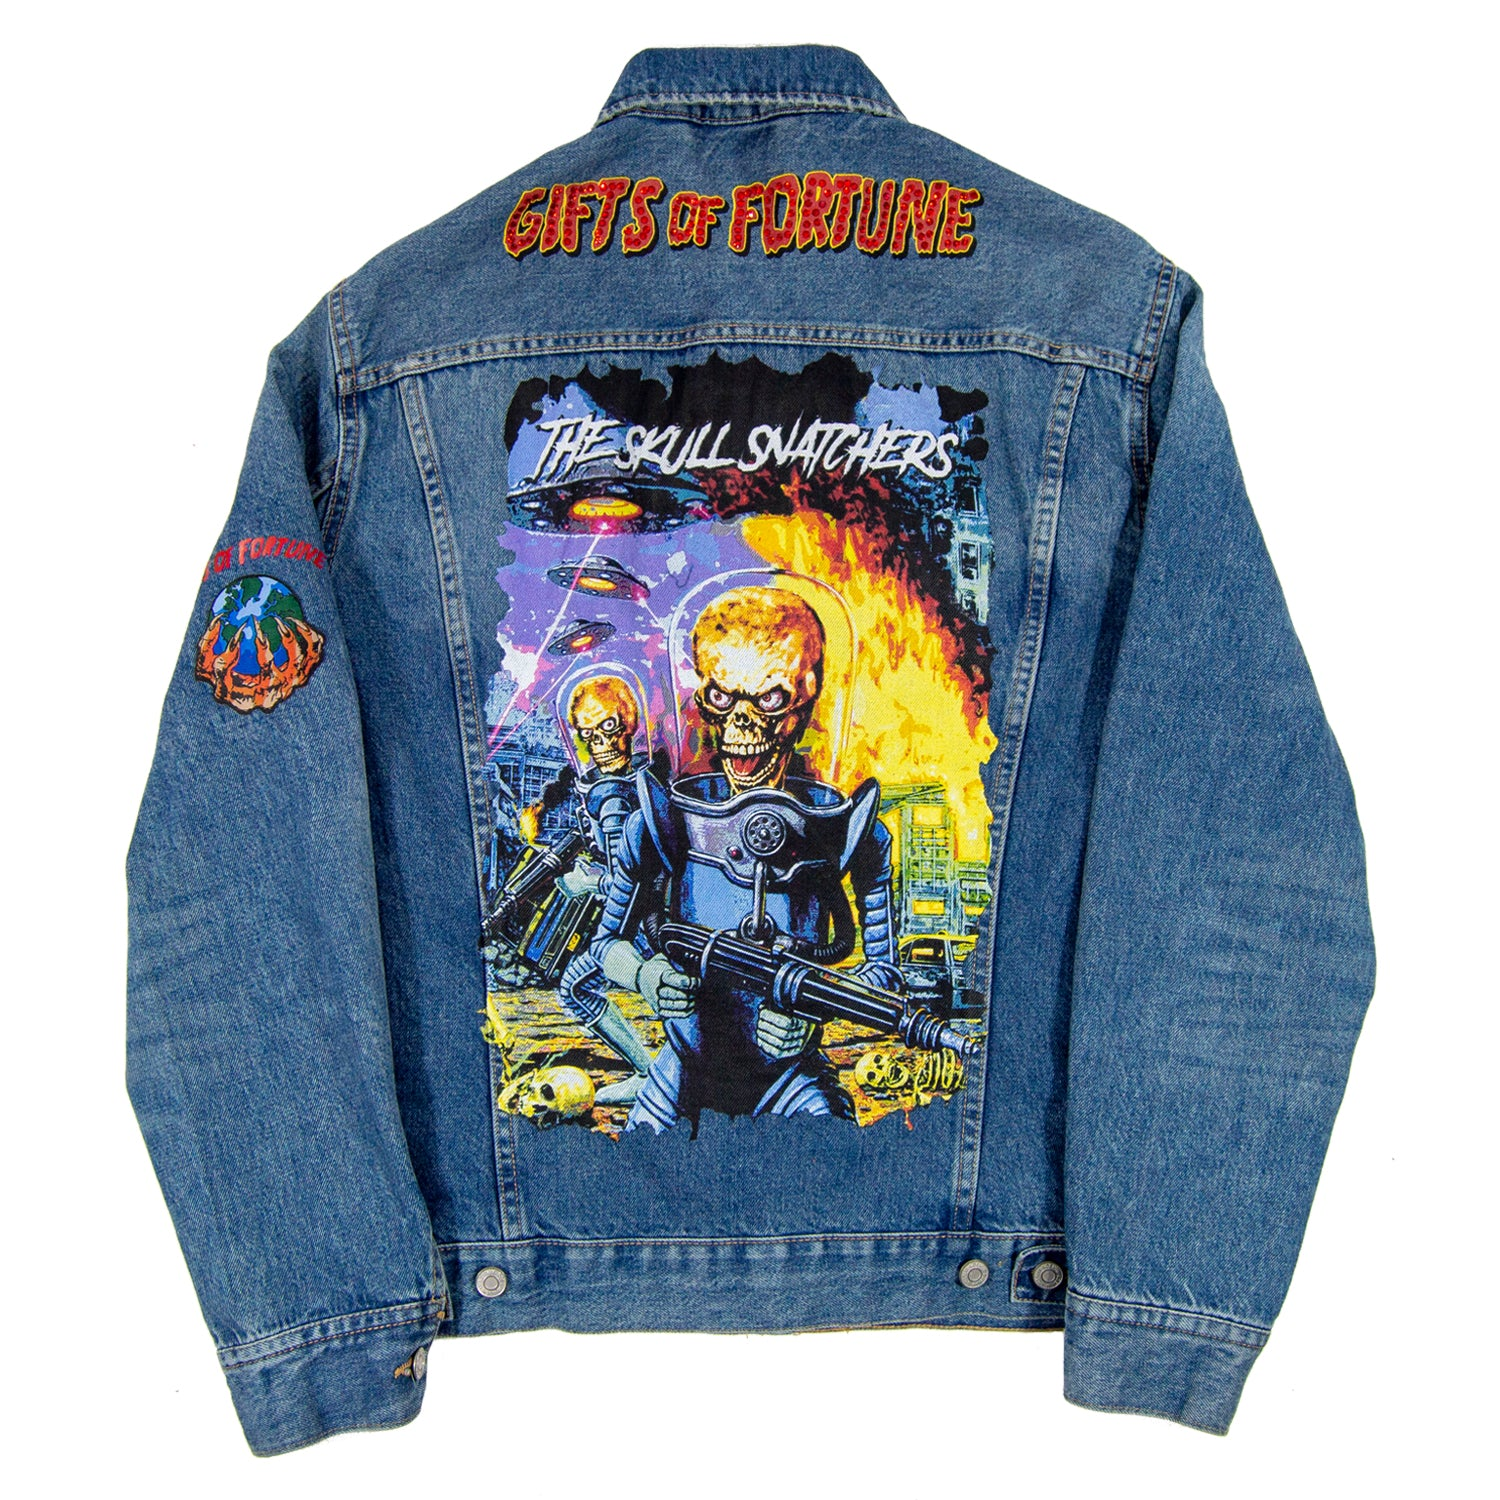 Act of War Denim Jacket - Gifts of Fortune